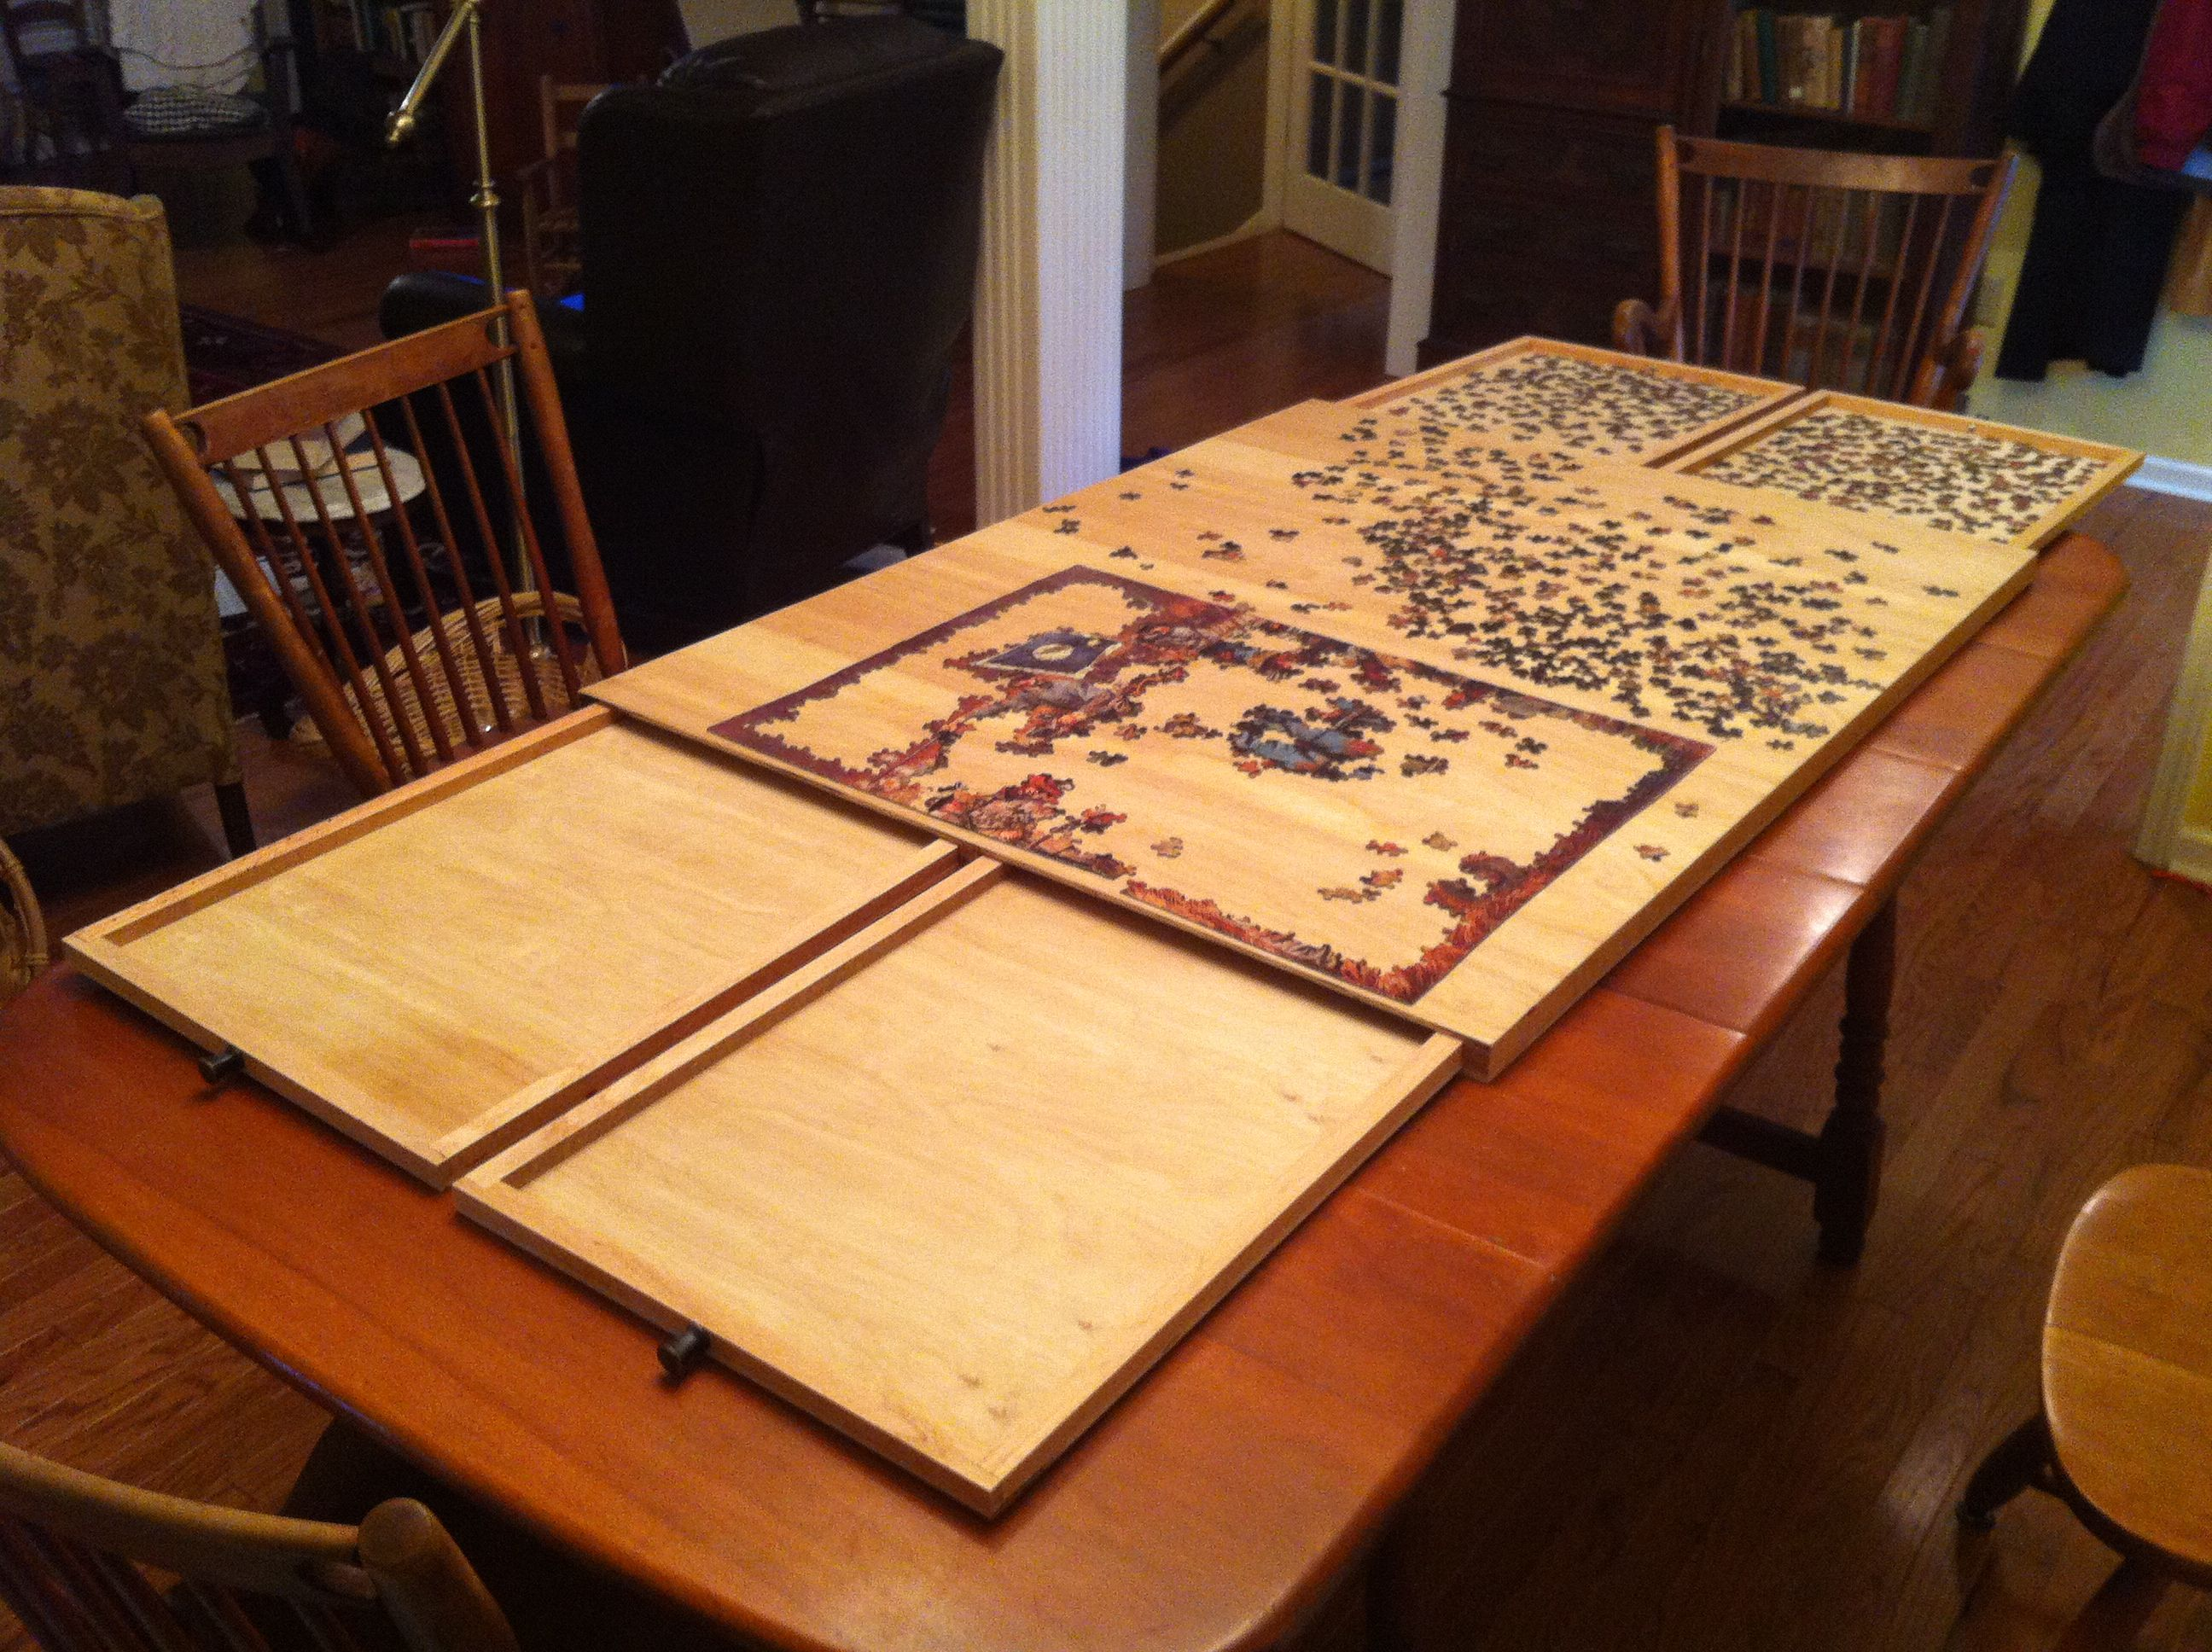 Awesome Puzzle Board Fully Opened